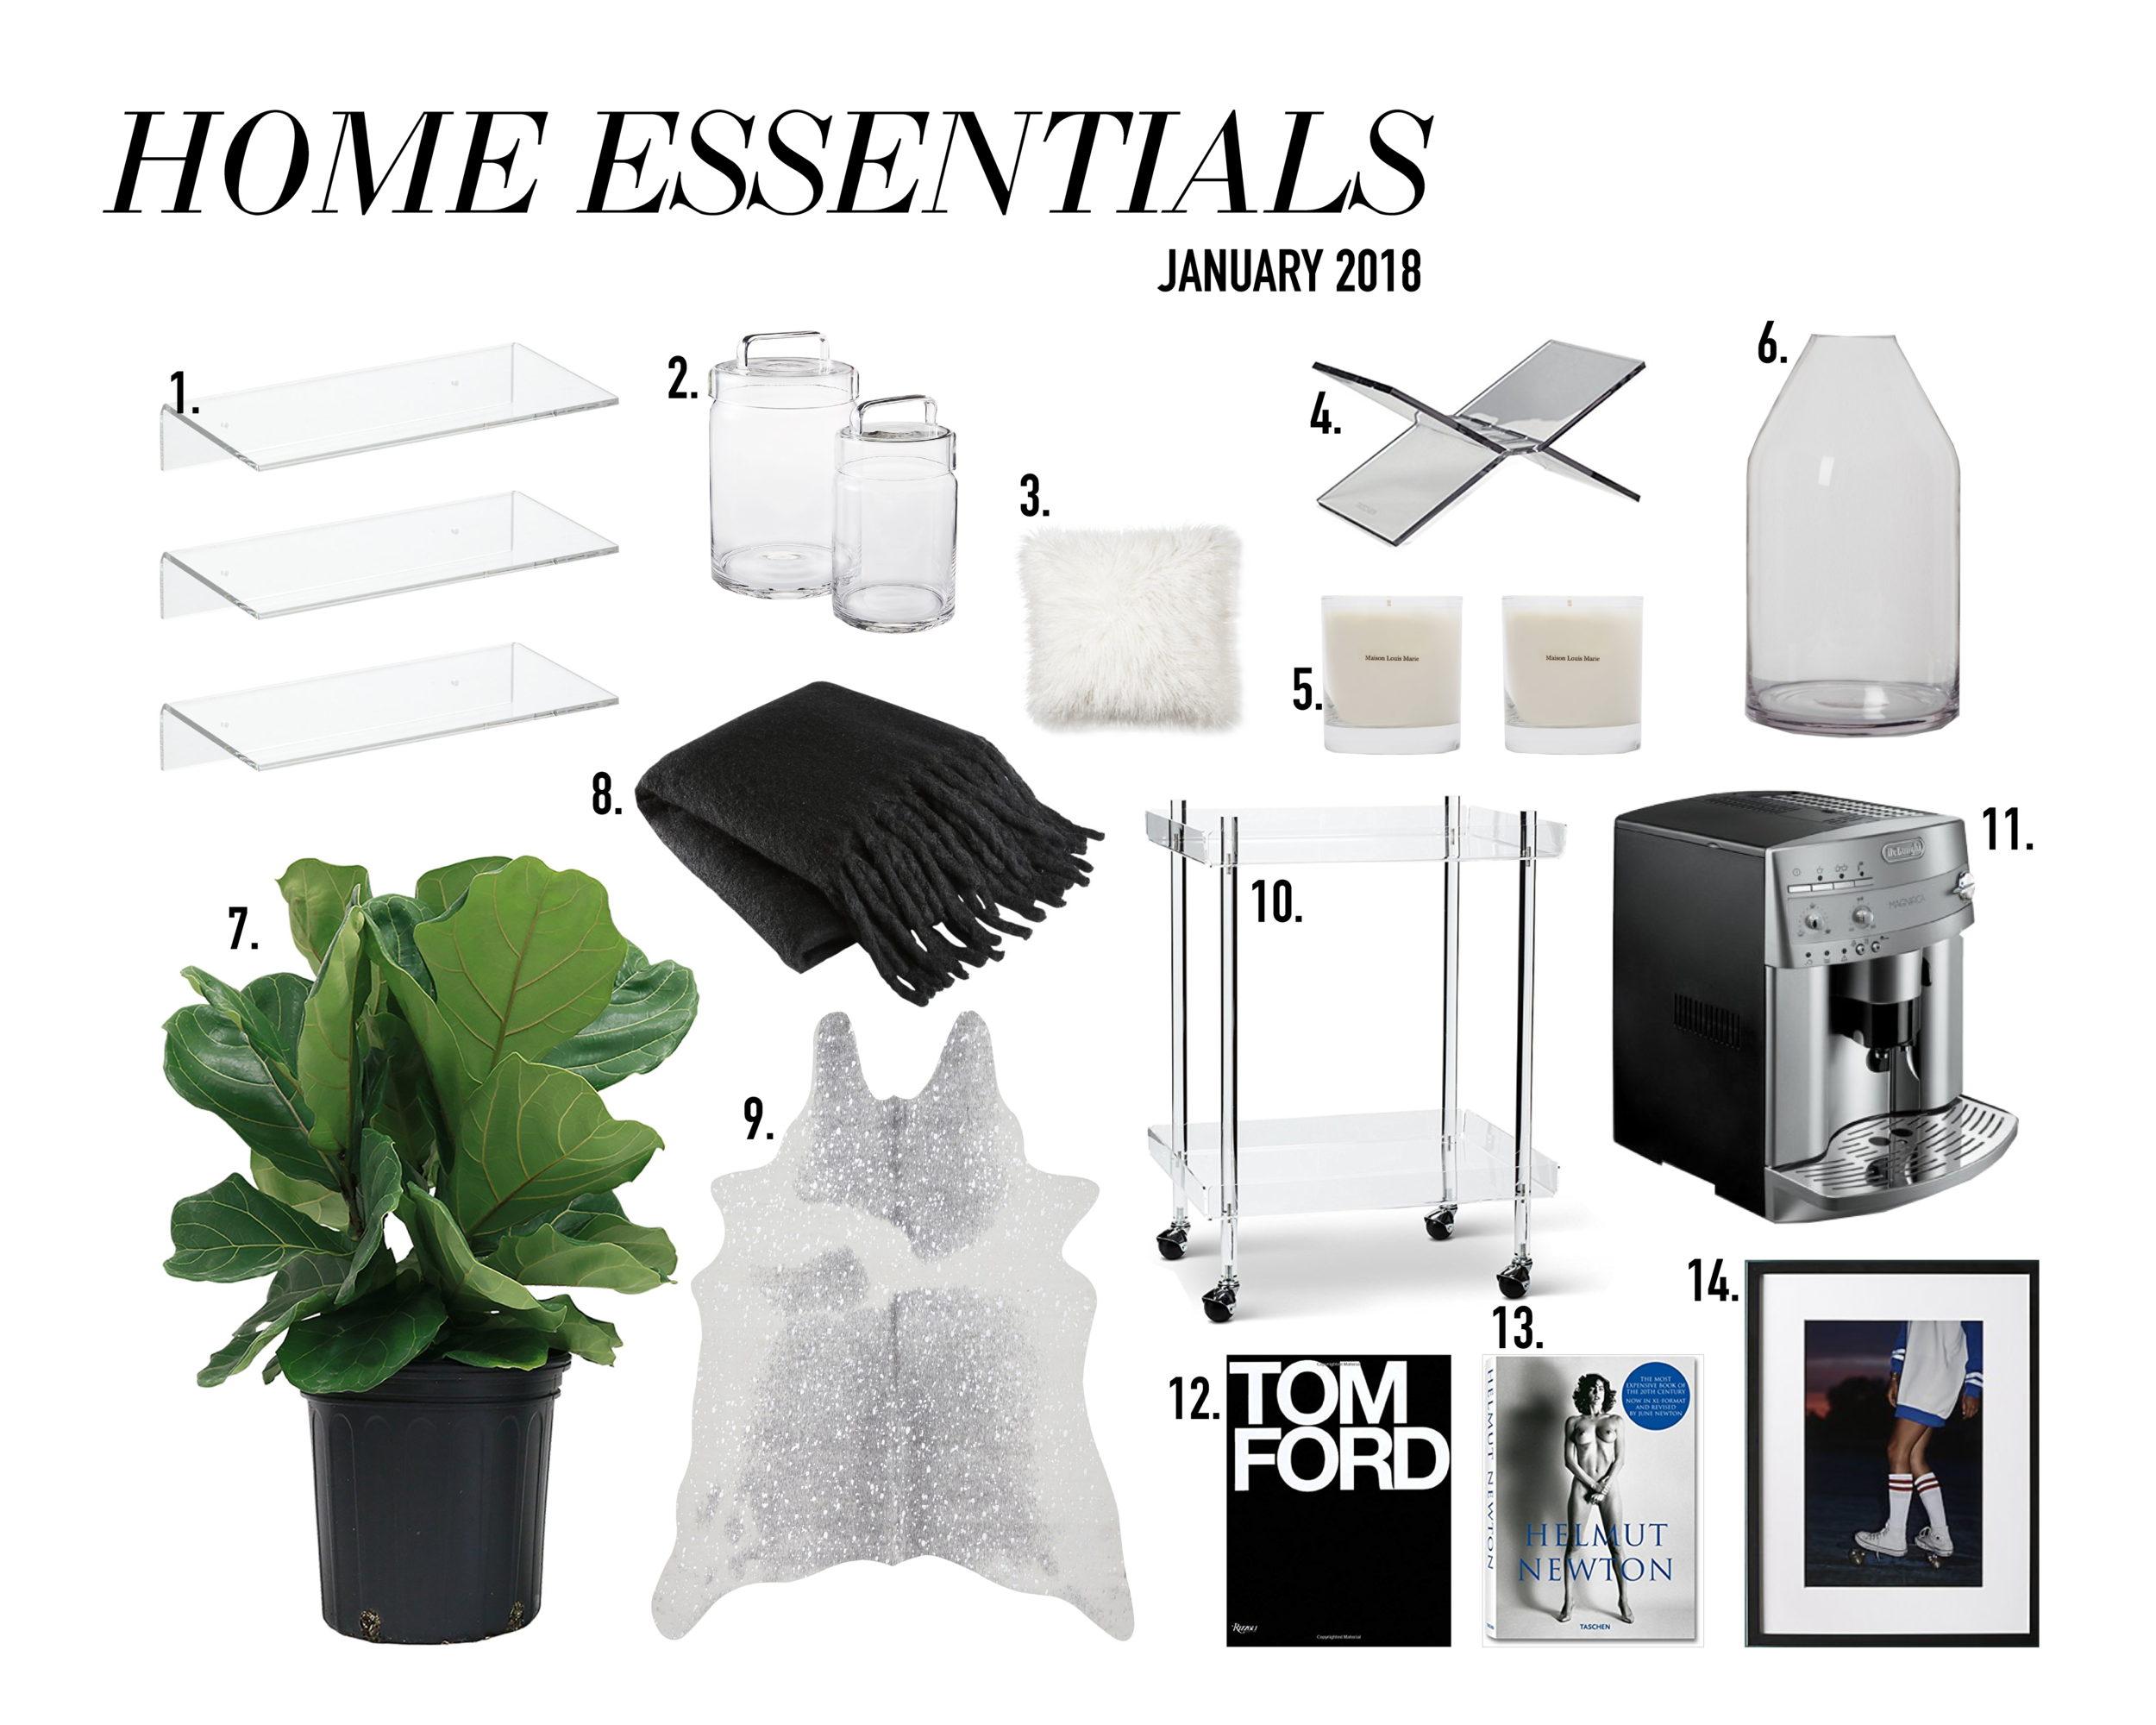 espresso machine  //  maison louis marie no. 4  //  acrylic bar cart  //  glass canisters  //  fiddle fig tree  //  print  //  fringe throw //  cowhide //  vase  //  fuzzy pillows  //  book stand //  tom ford coffee table book  //  helmut newton coffee table book  //  lucite shelving